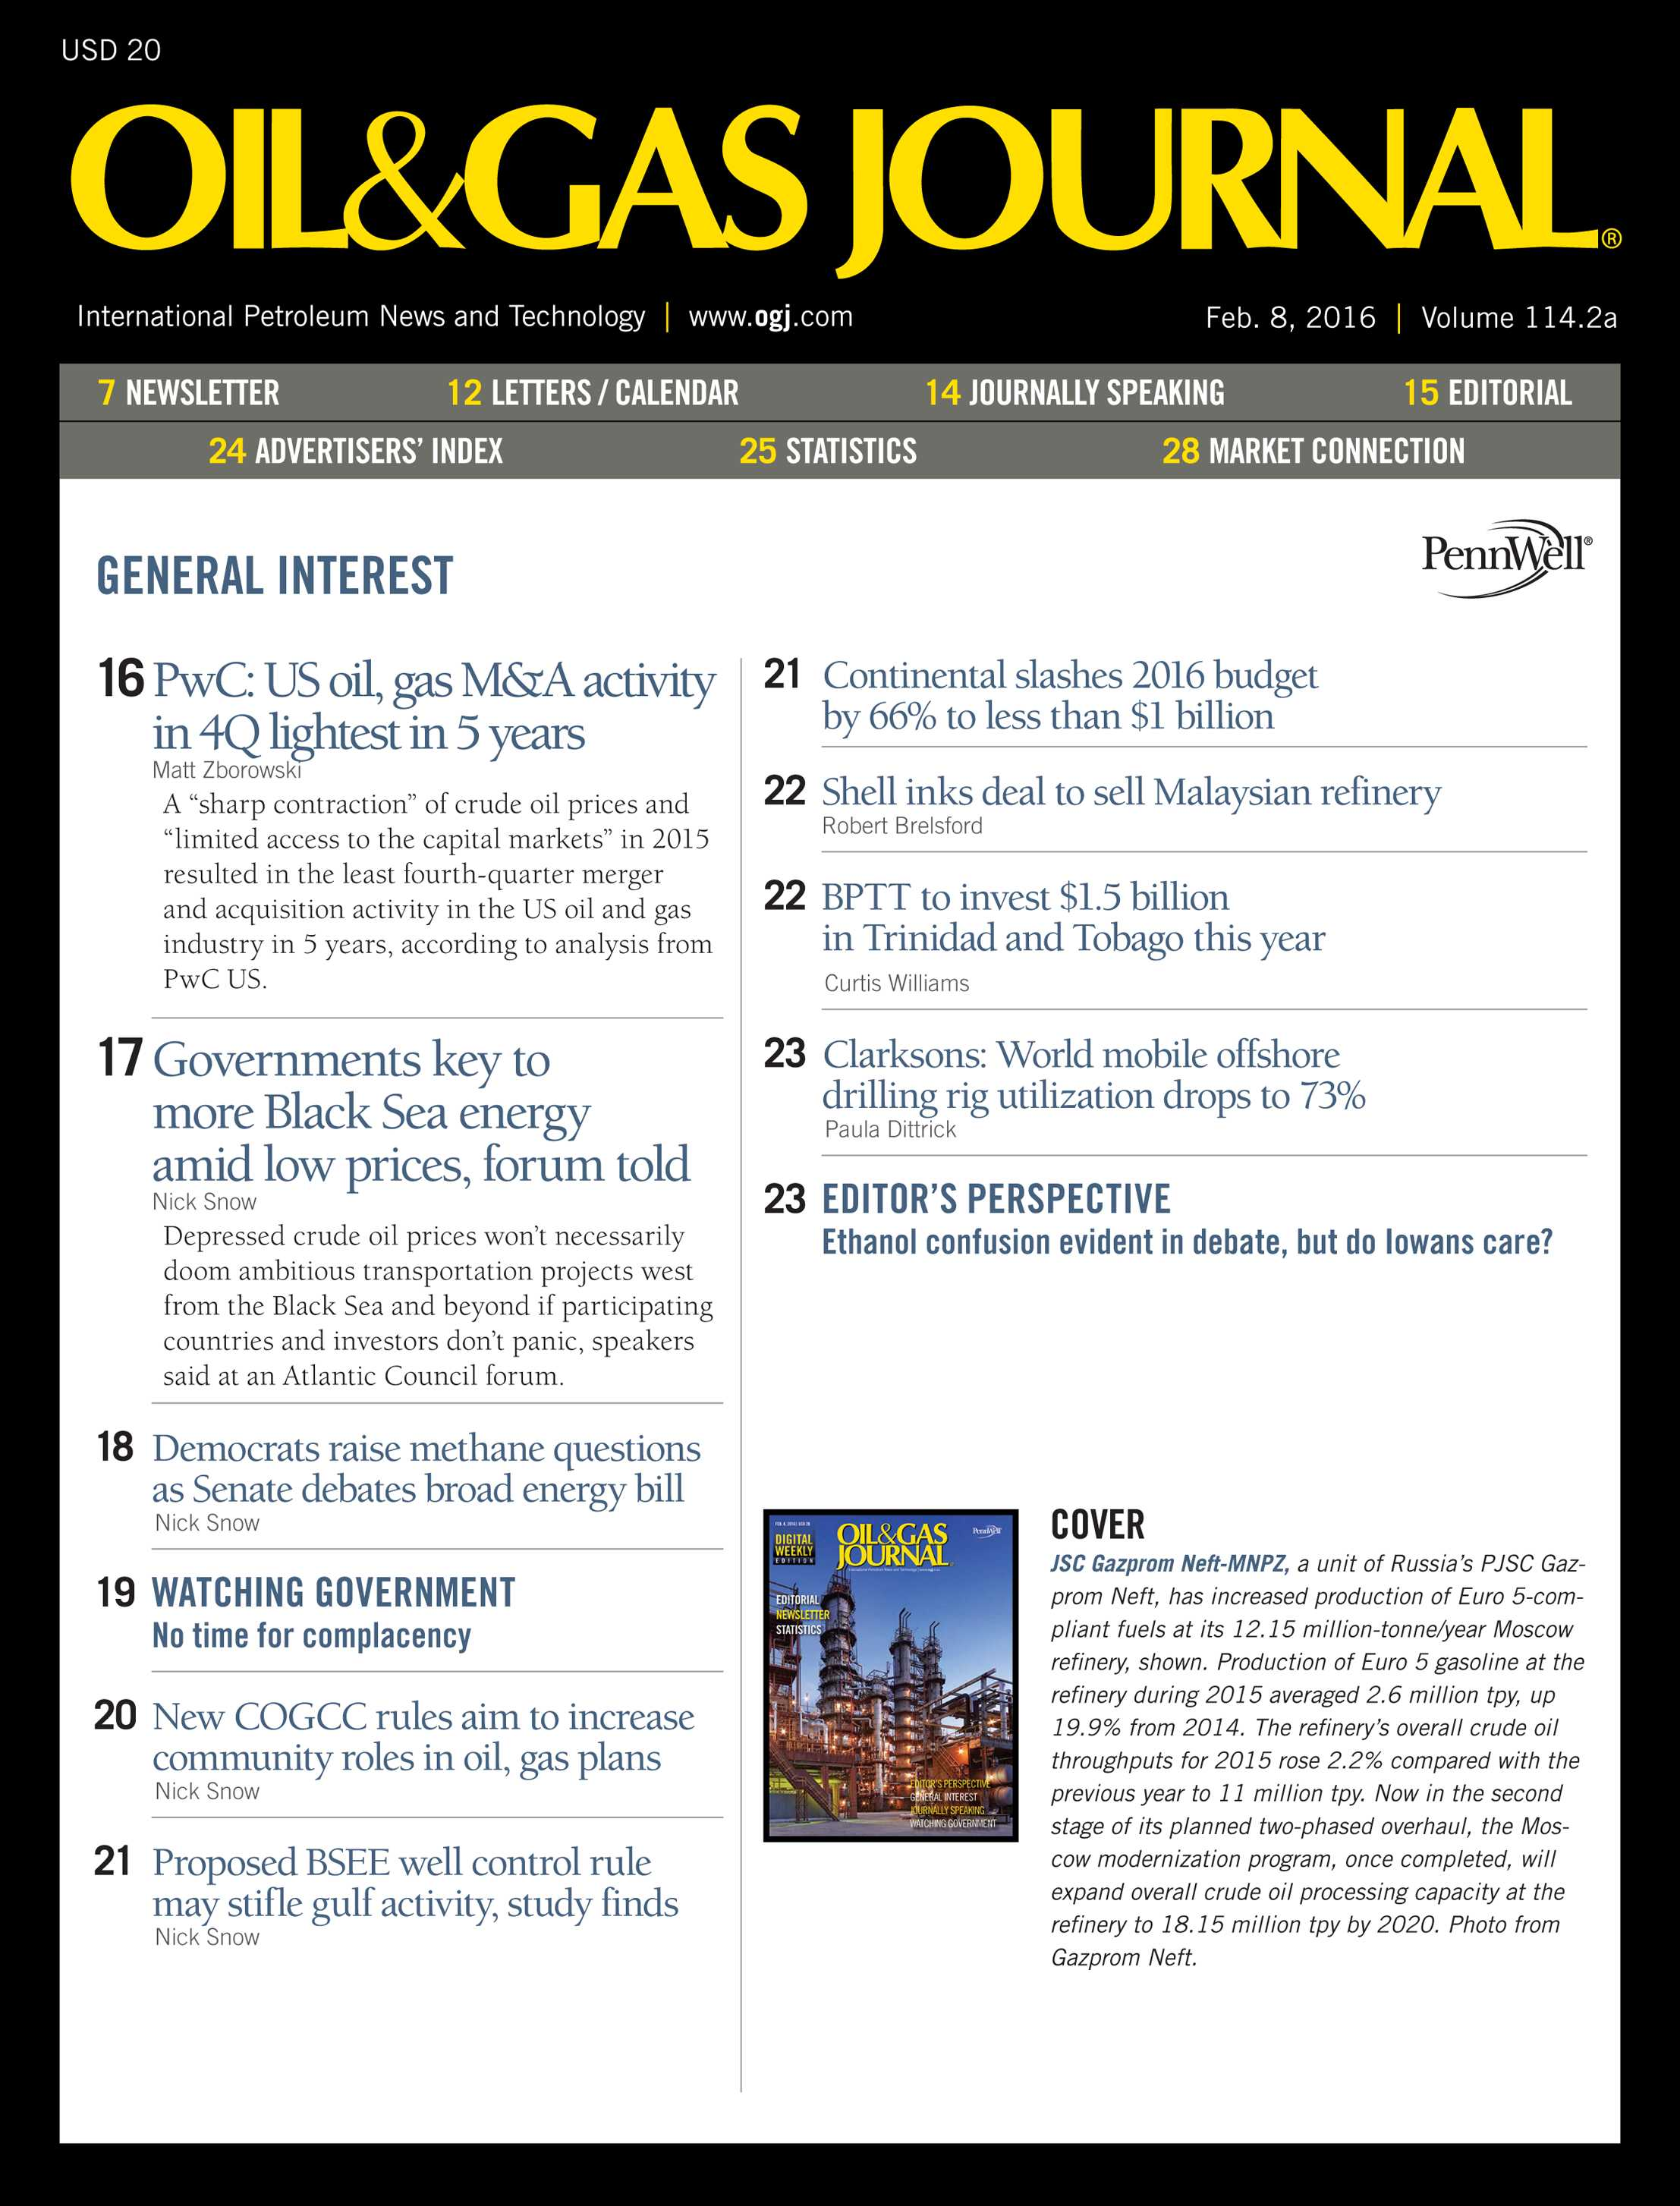 Oil & Gas Journal - February 8, 2016 - page 3